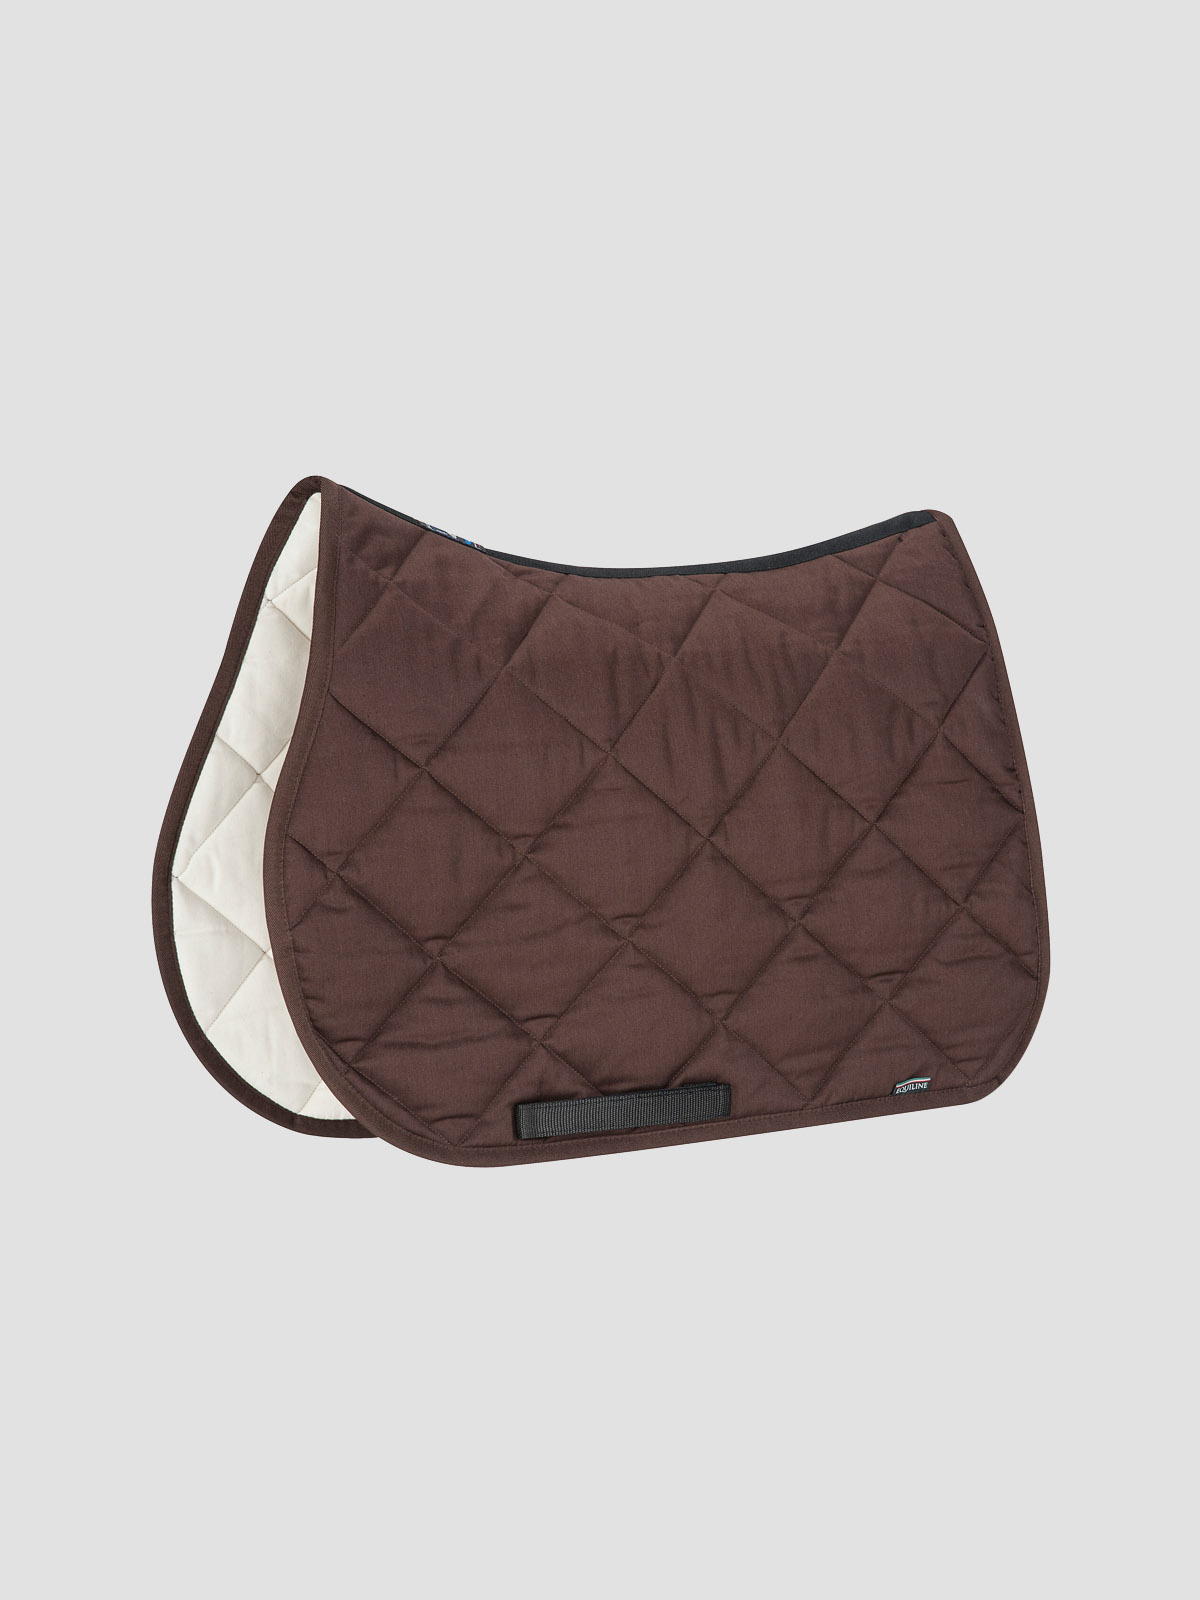 ROMBO - Rombo Saddle Pad 1